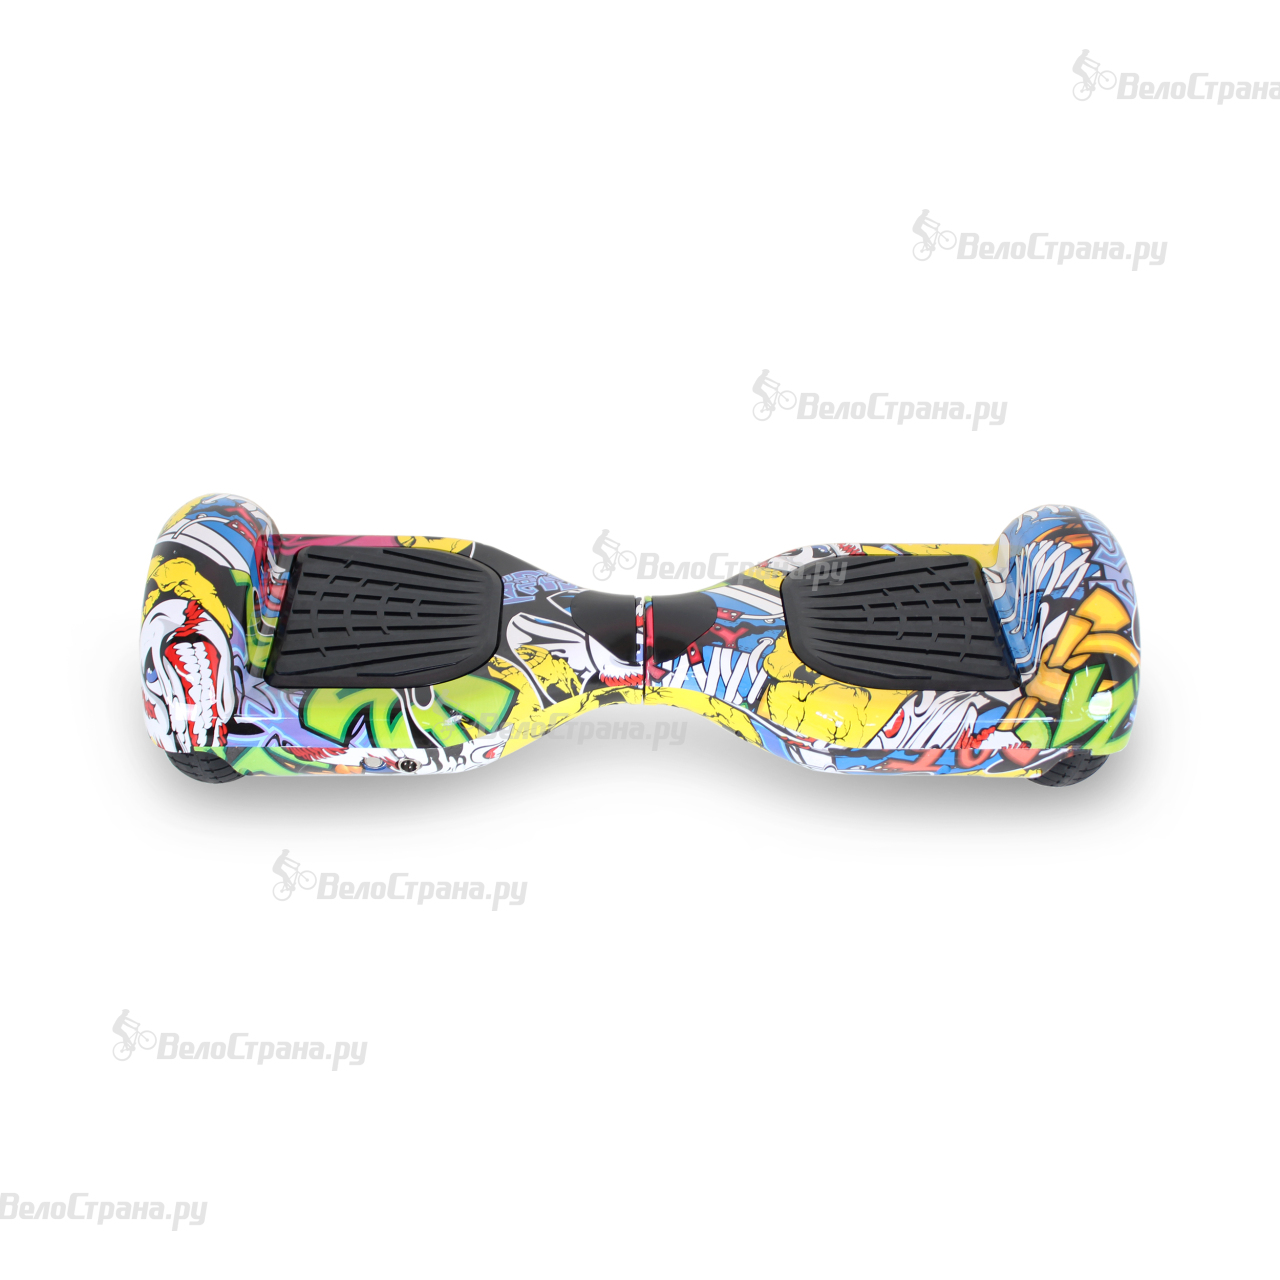 купить Hoverbot A-3 Light Yellow multicolor онлайн